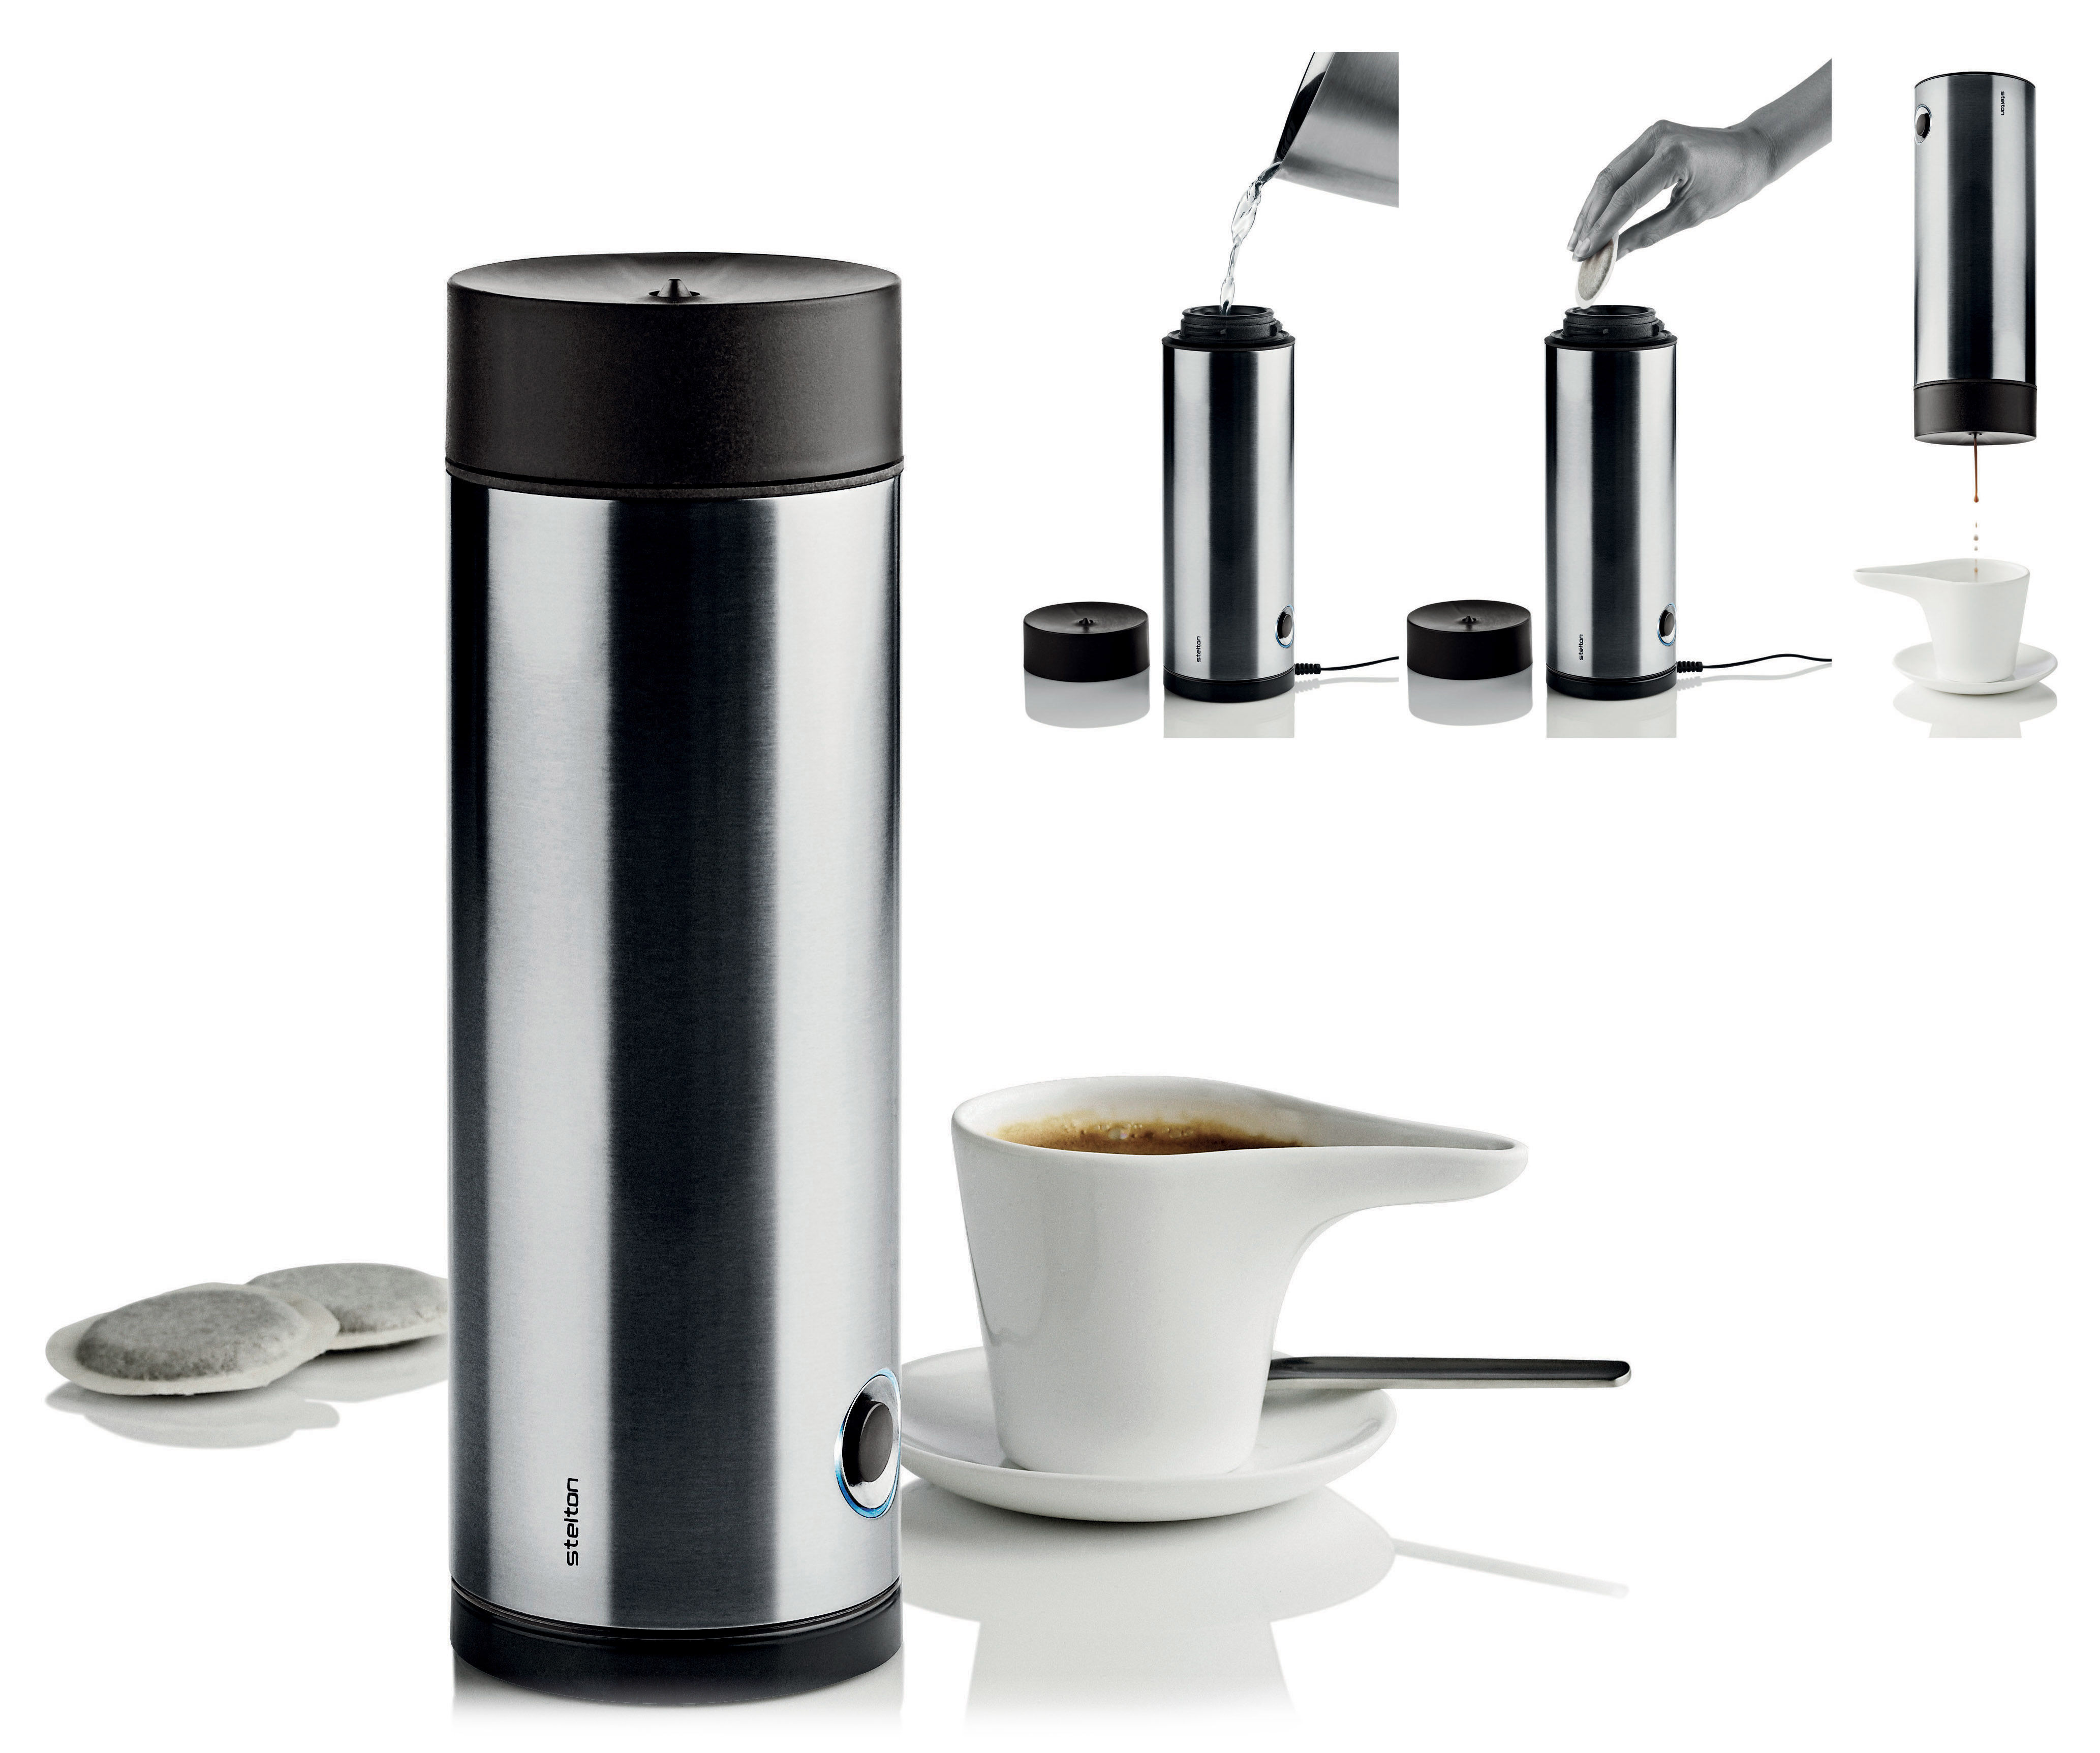 Kitchenware - Kitchen Appliances - Simply Electric espresso maker - Portable : With rechargeable battery by Stelton - Steel - Plastic, Stainless steel